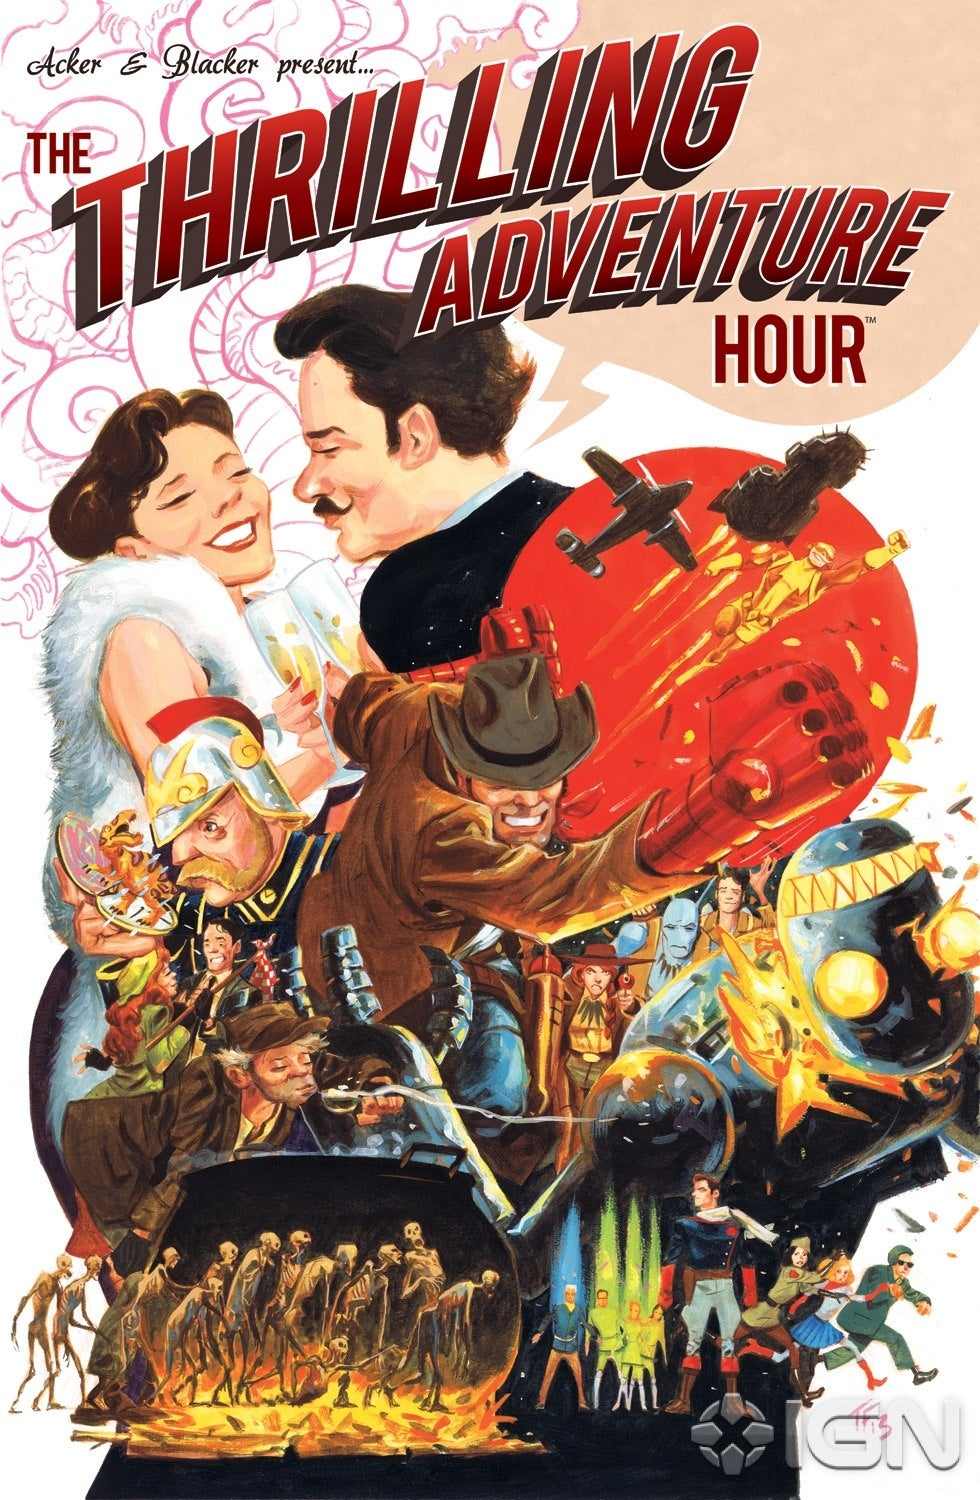 Archaia Captures The Thrilling Adventure Hour IGN